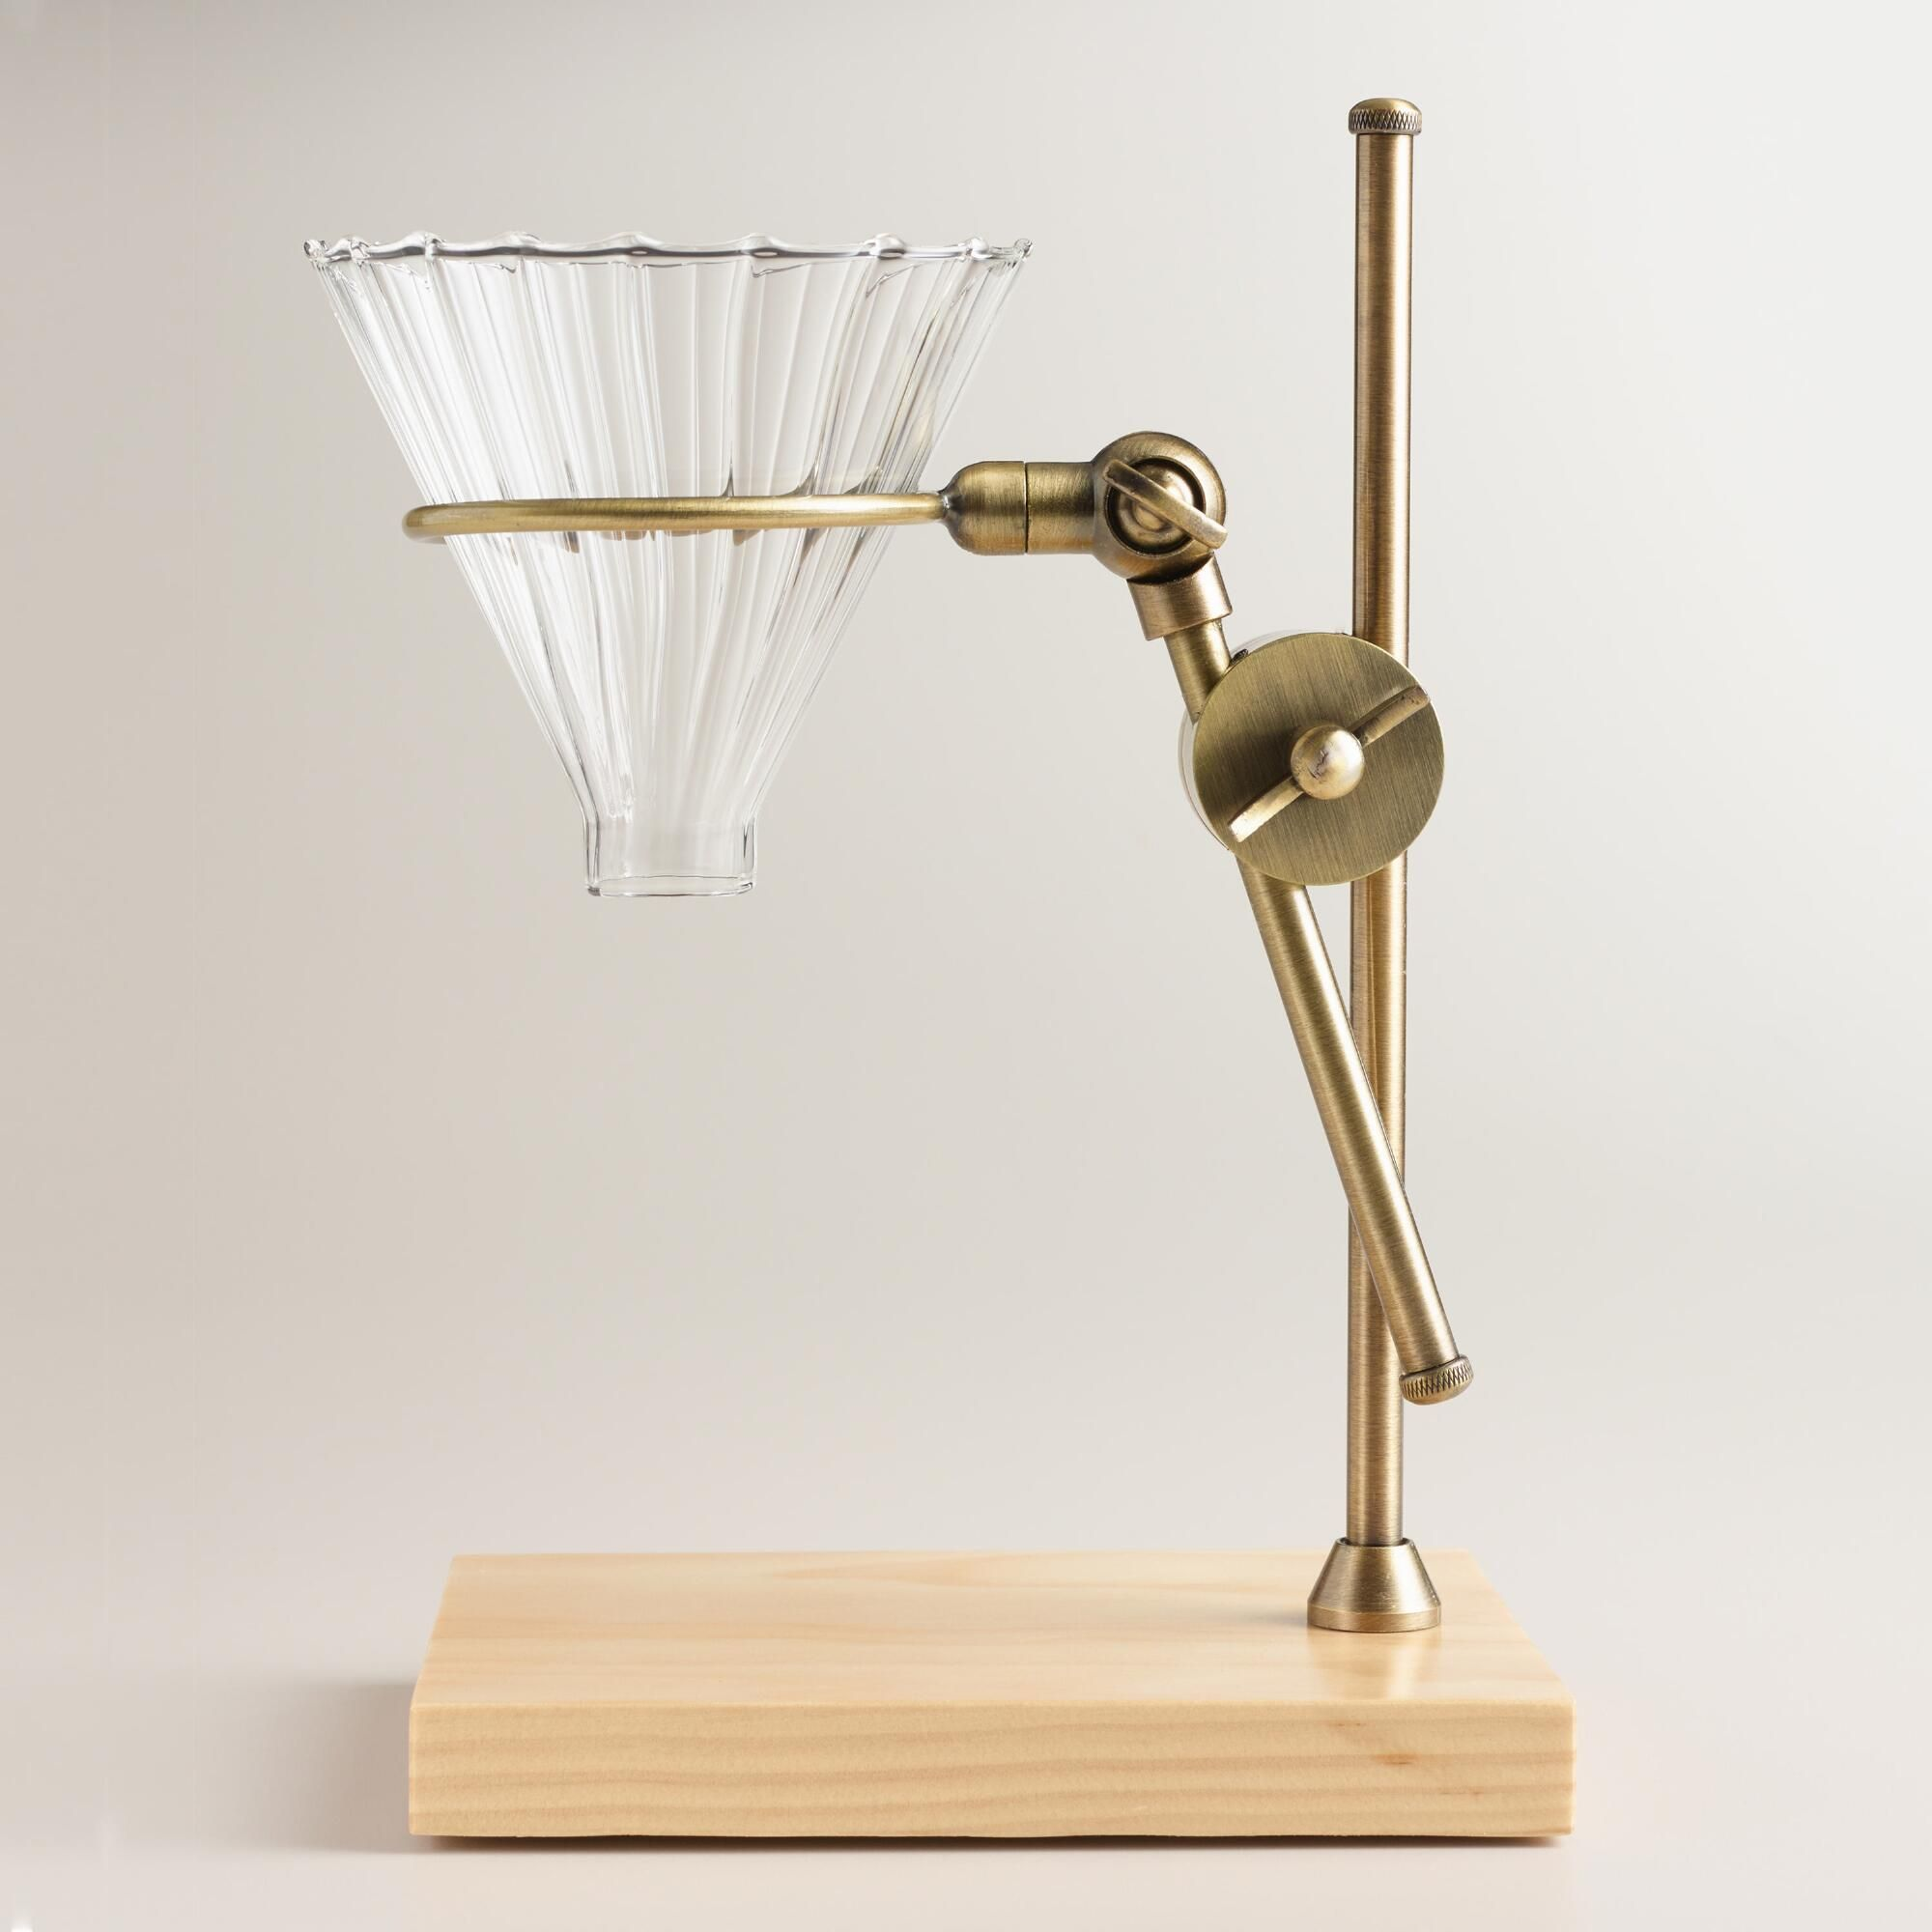 Crafted with an adjustable, industrialstyle brass arm, a